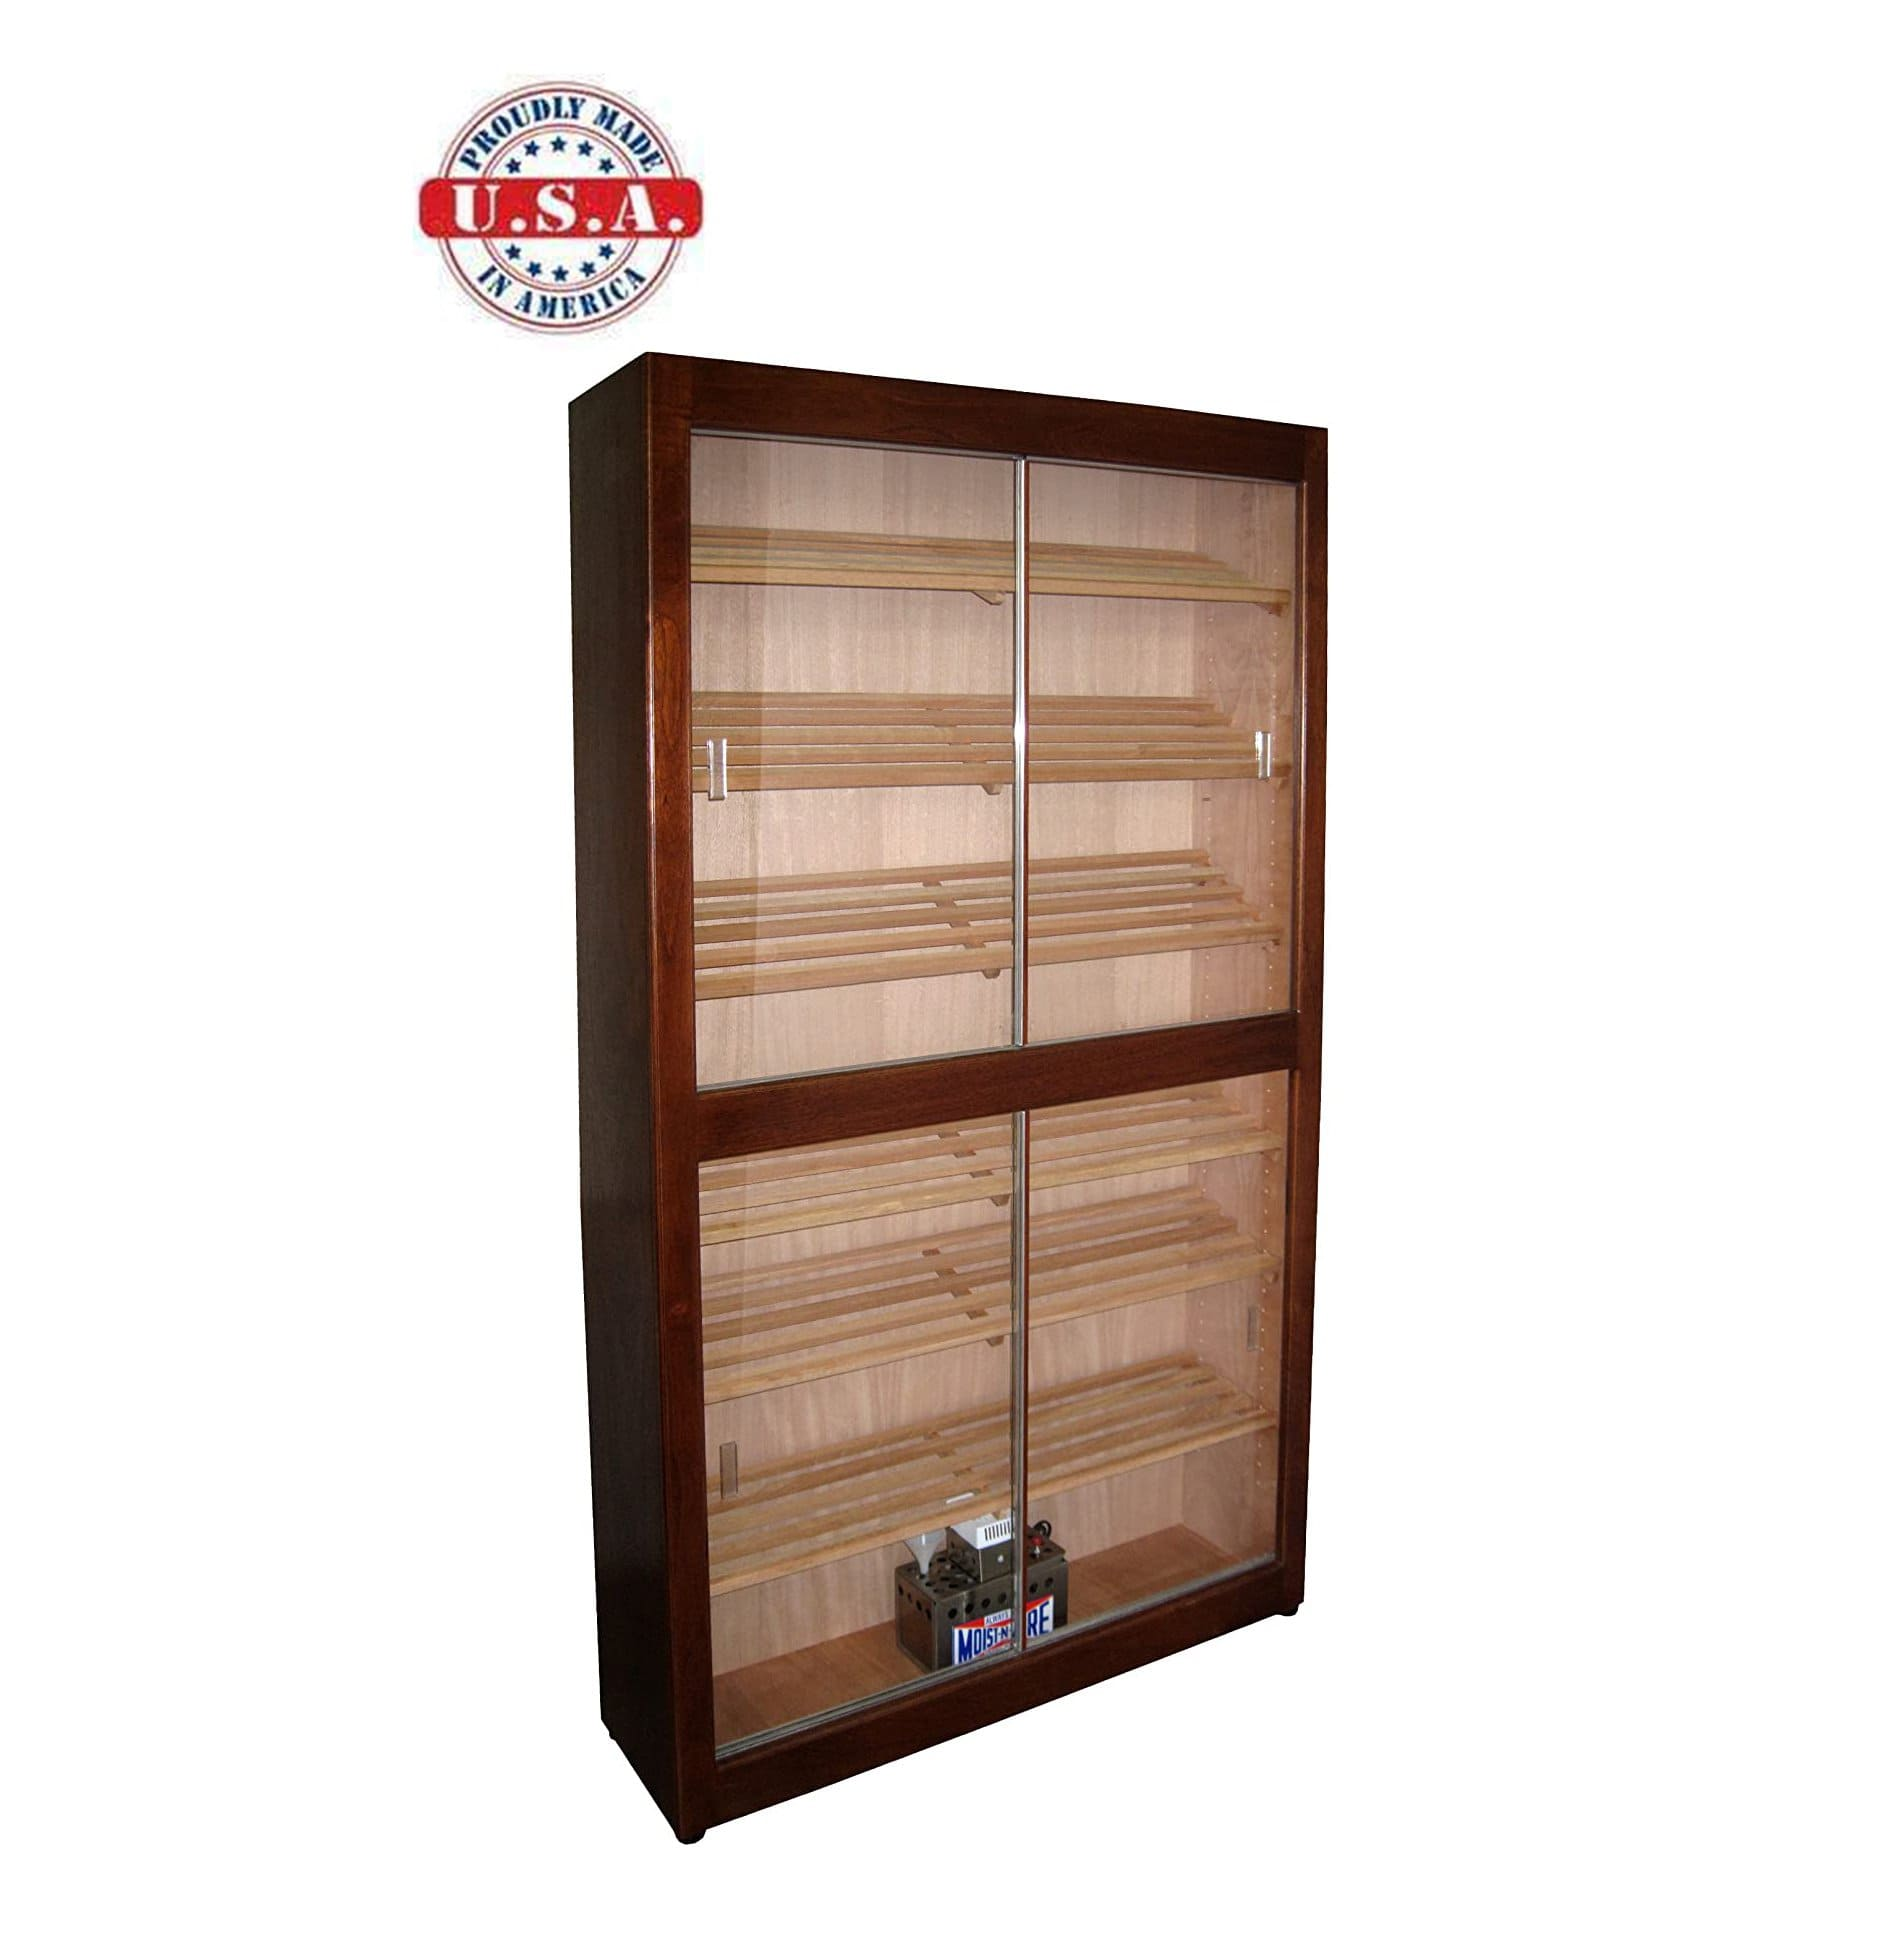 Elegant Bar HUMIDOR Model 3 Elegant Commercial Display Cigar Humidor